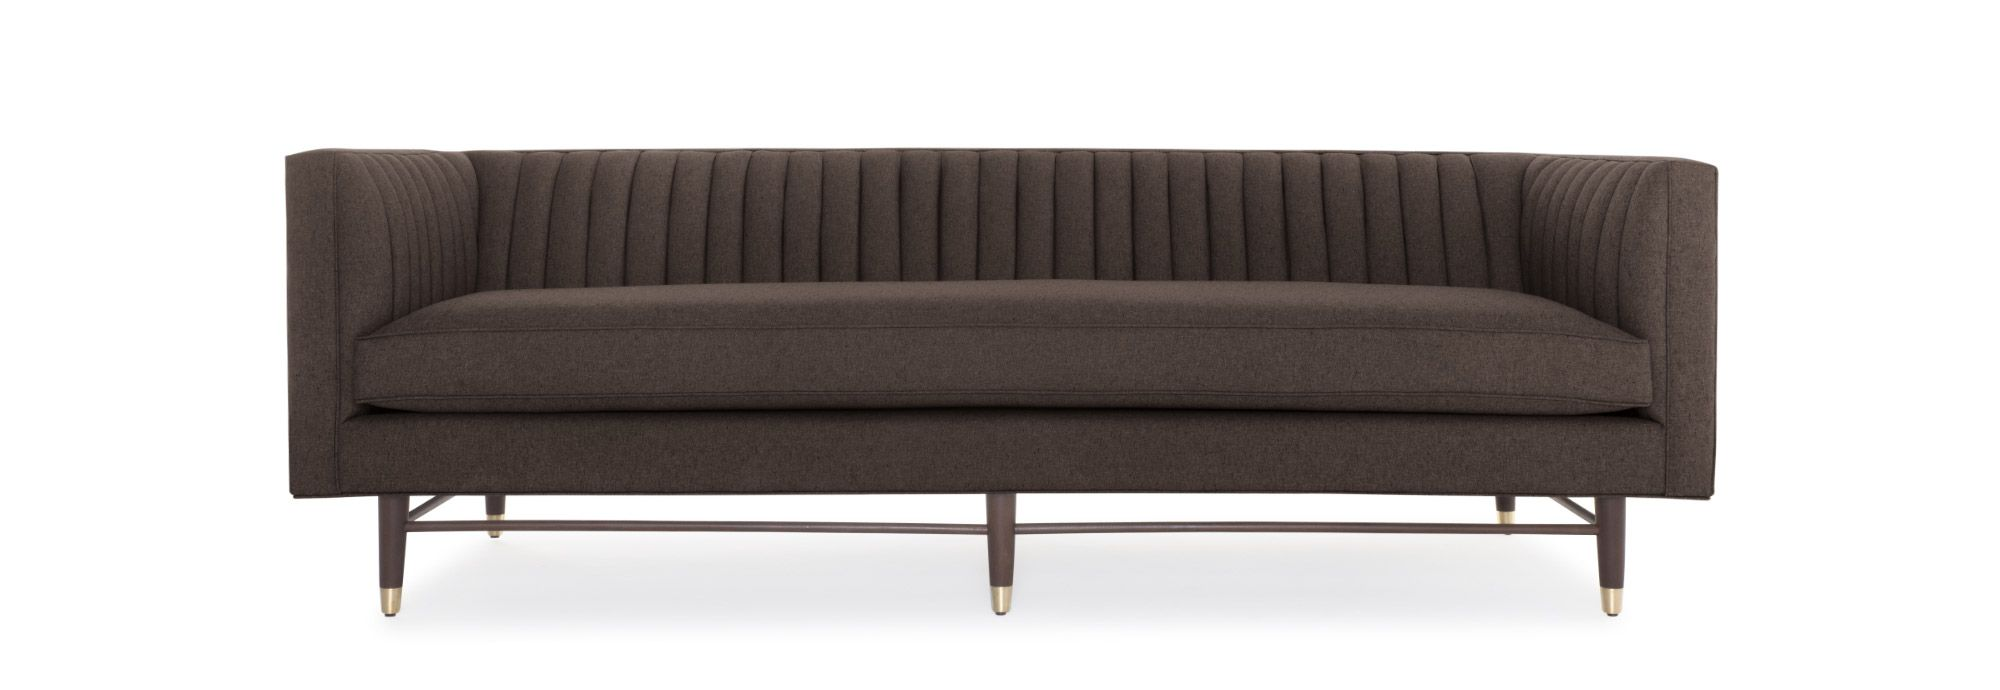 Sofa Chelsea chelsea sofa chelsea bench cushions and bench